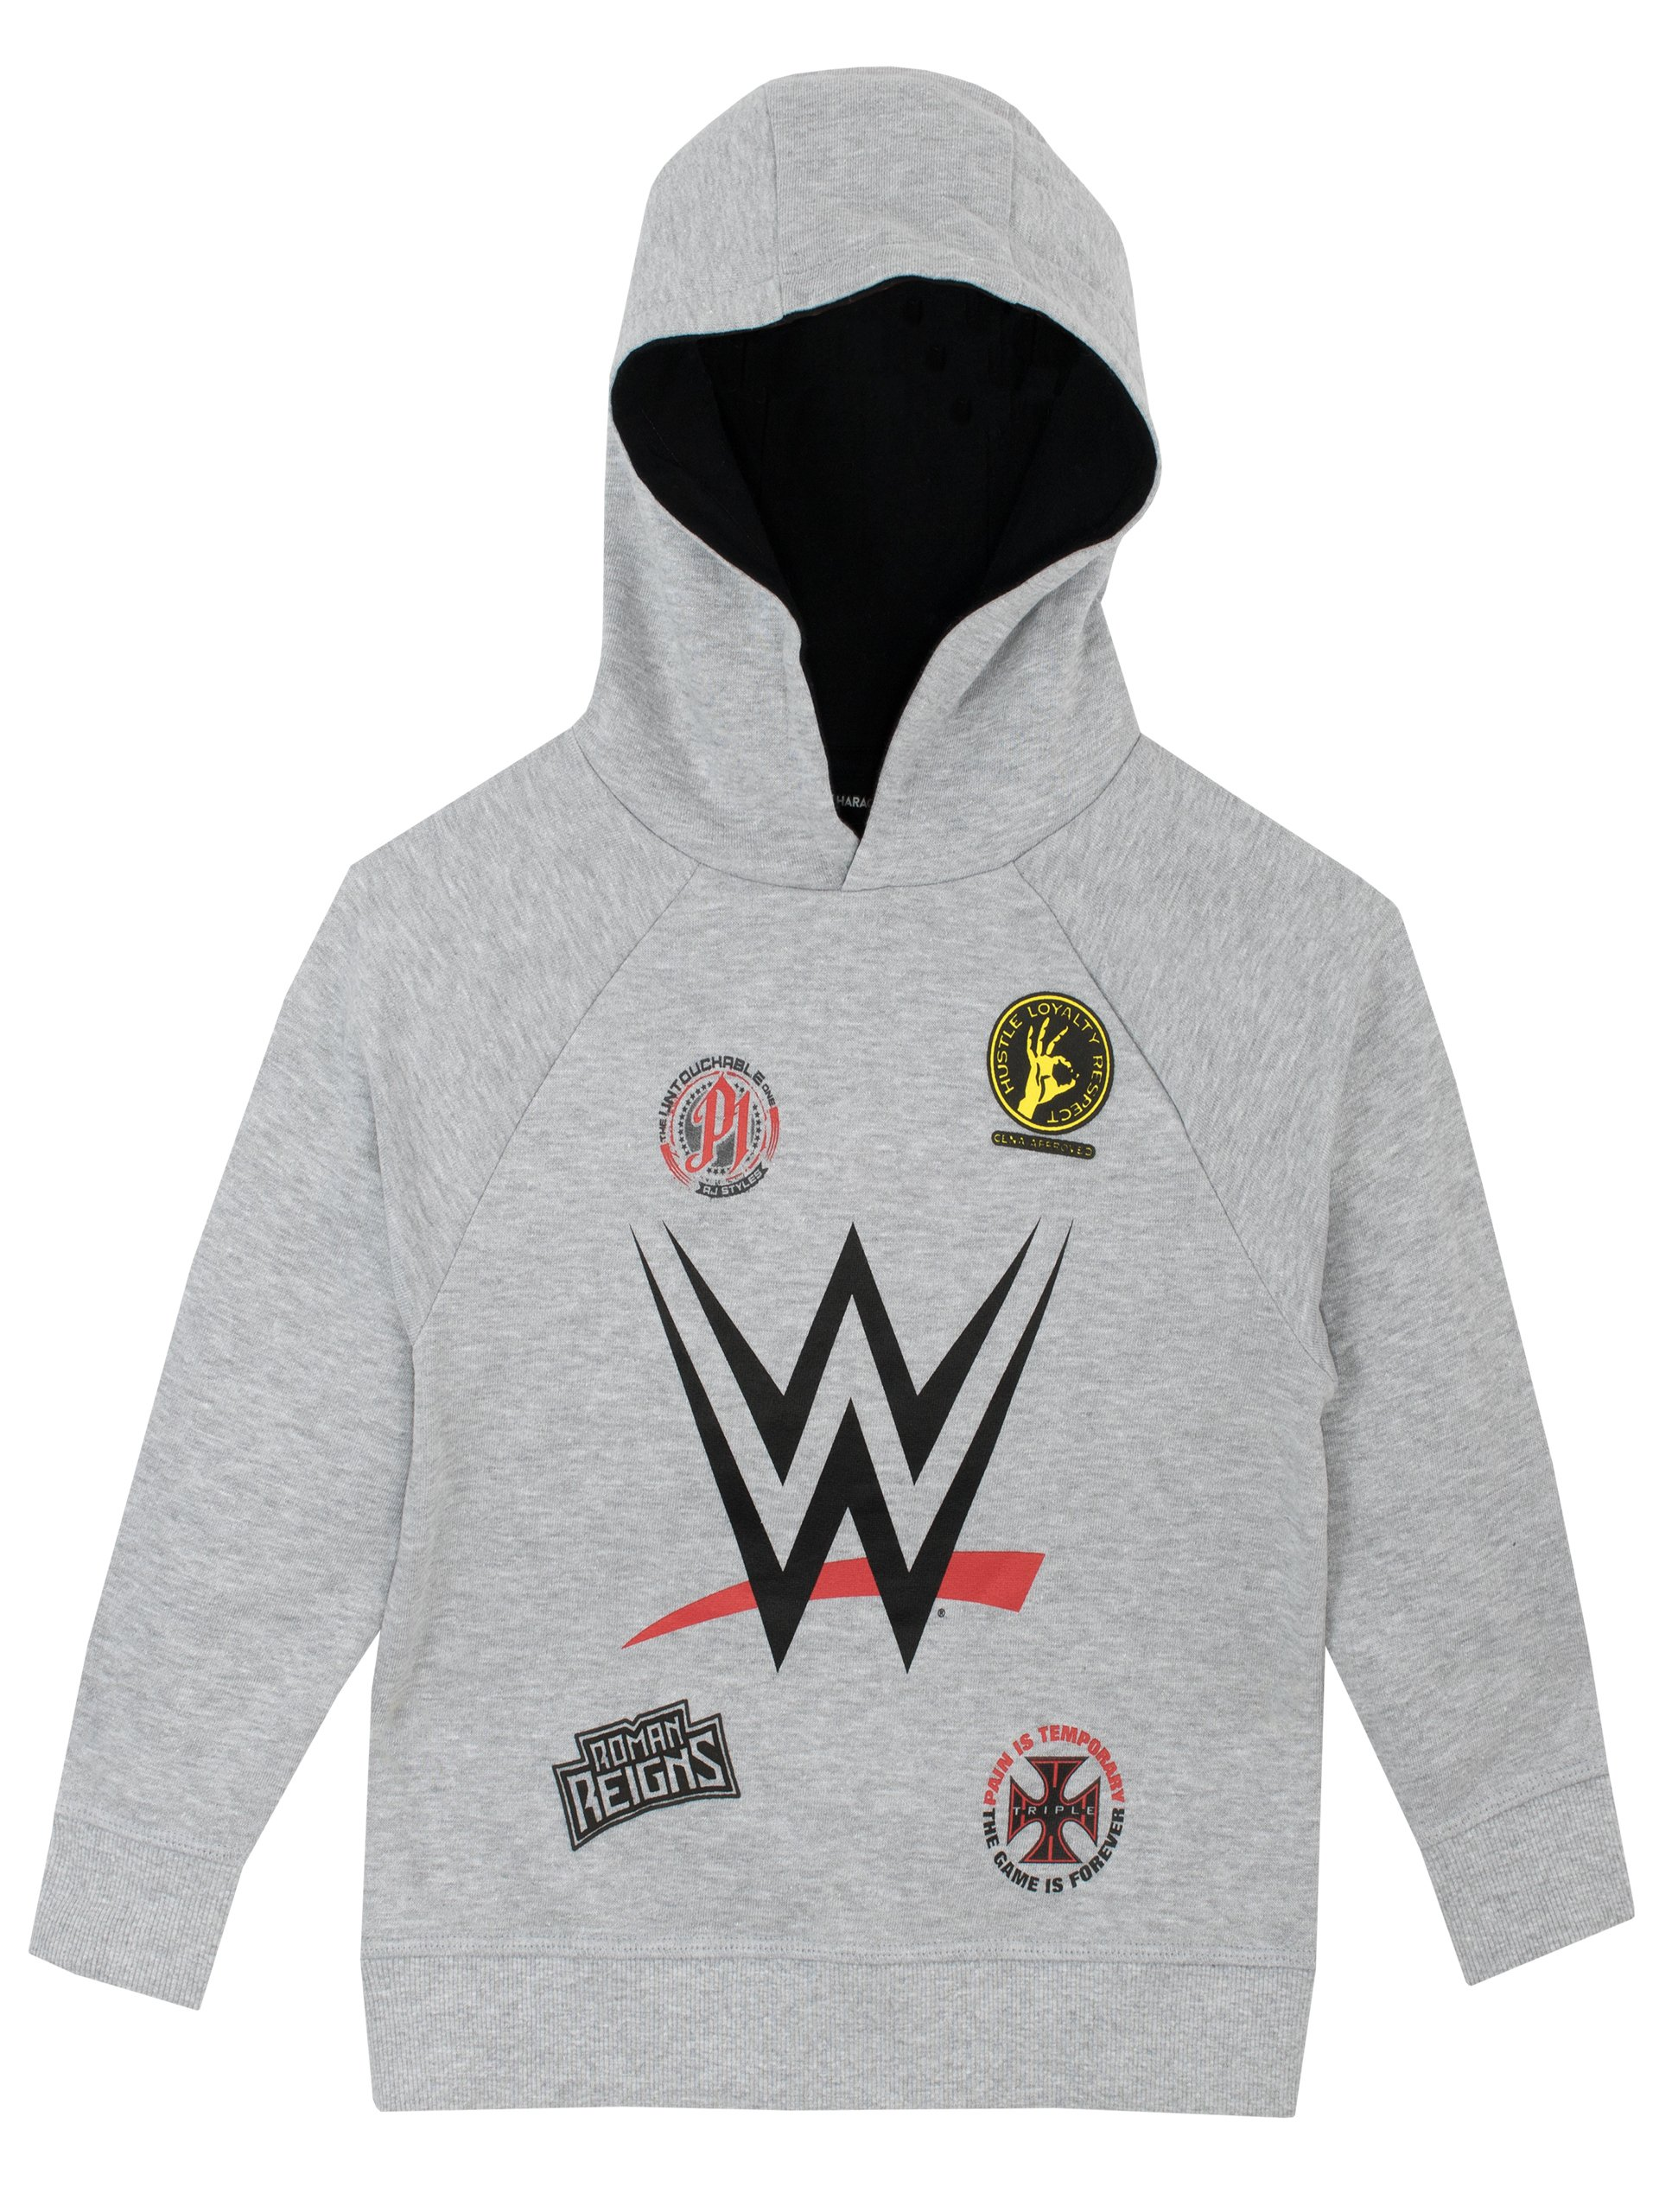 WWE Boys' World Wrestling Entertainment Hoodie Size 10 by WWE